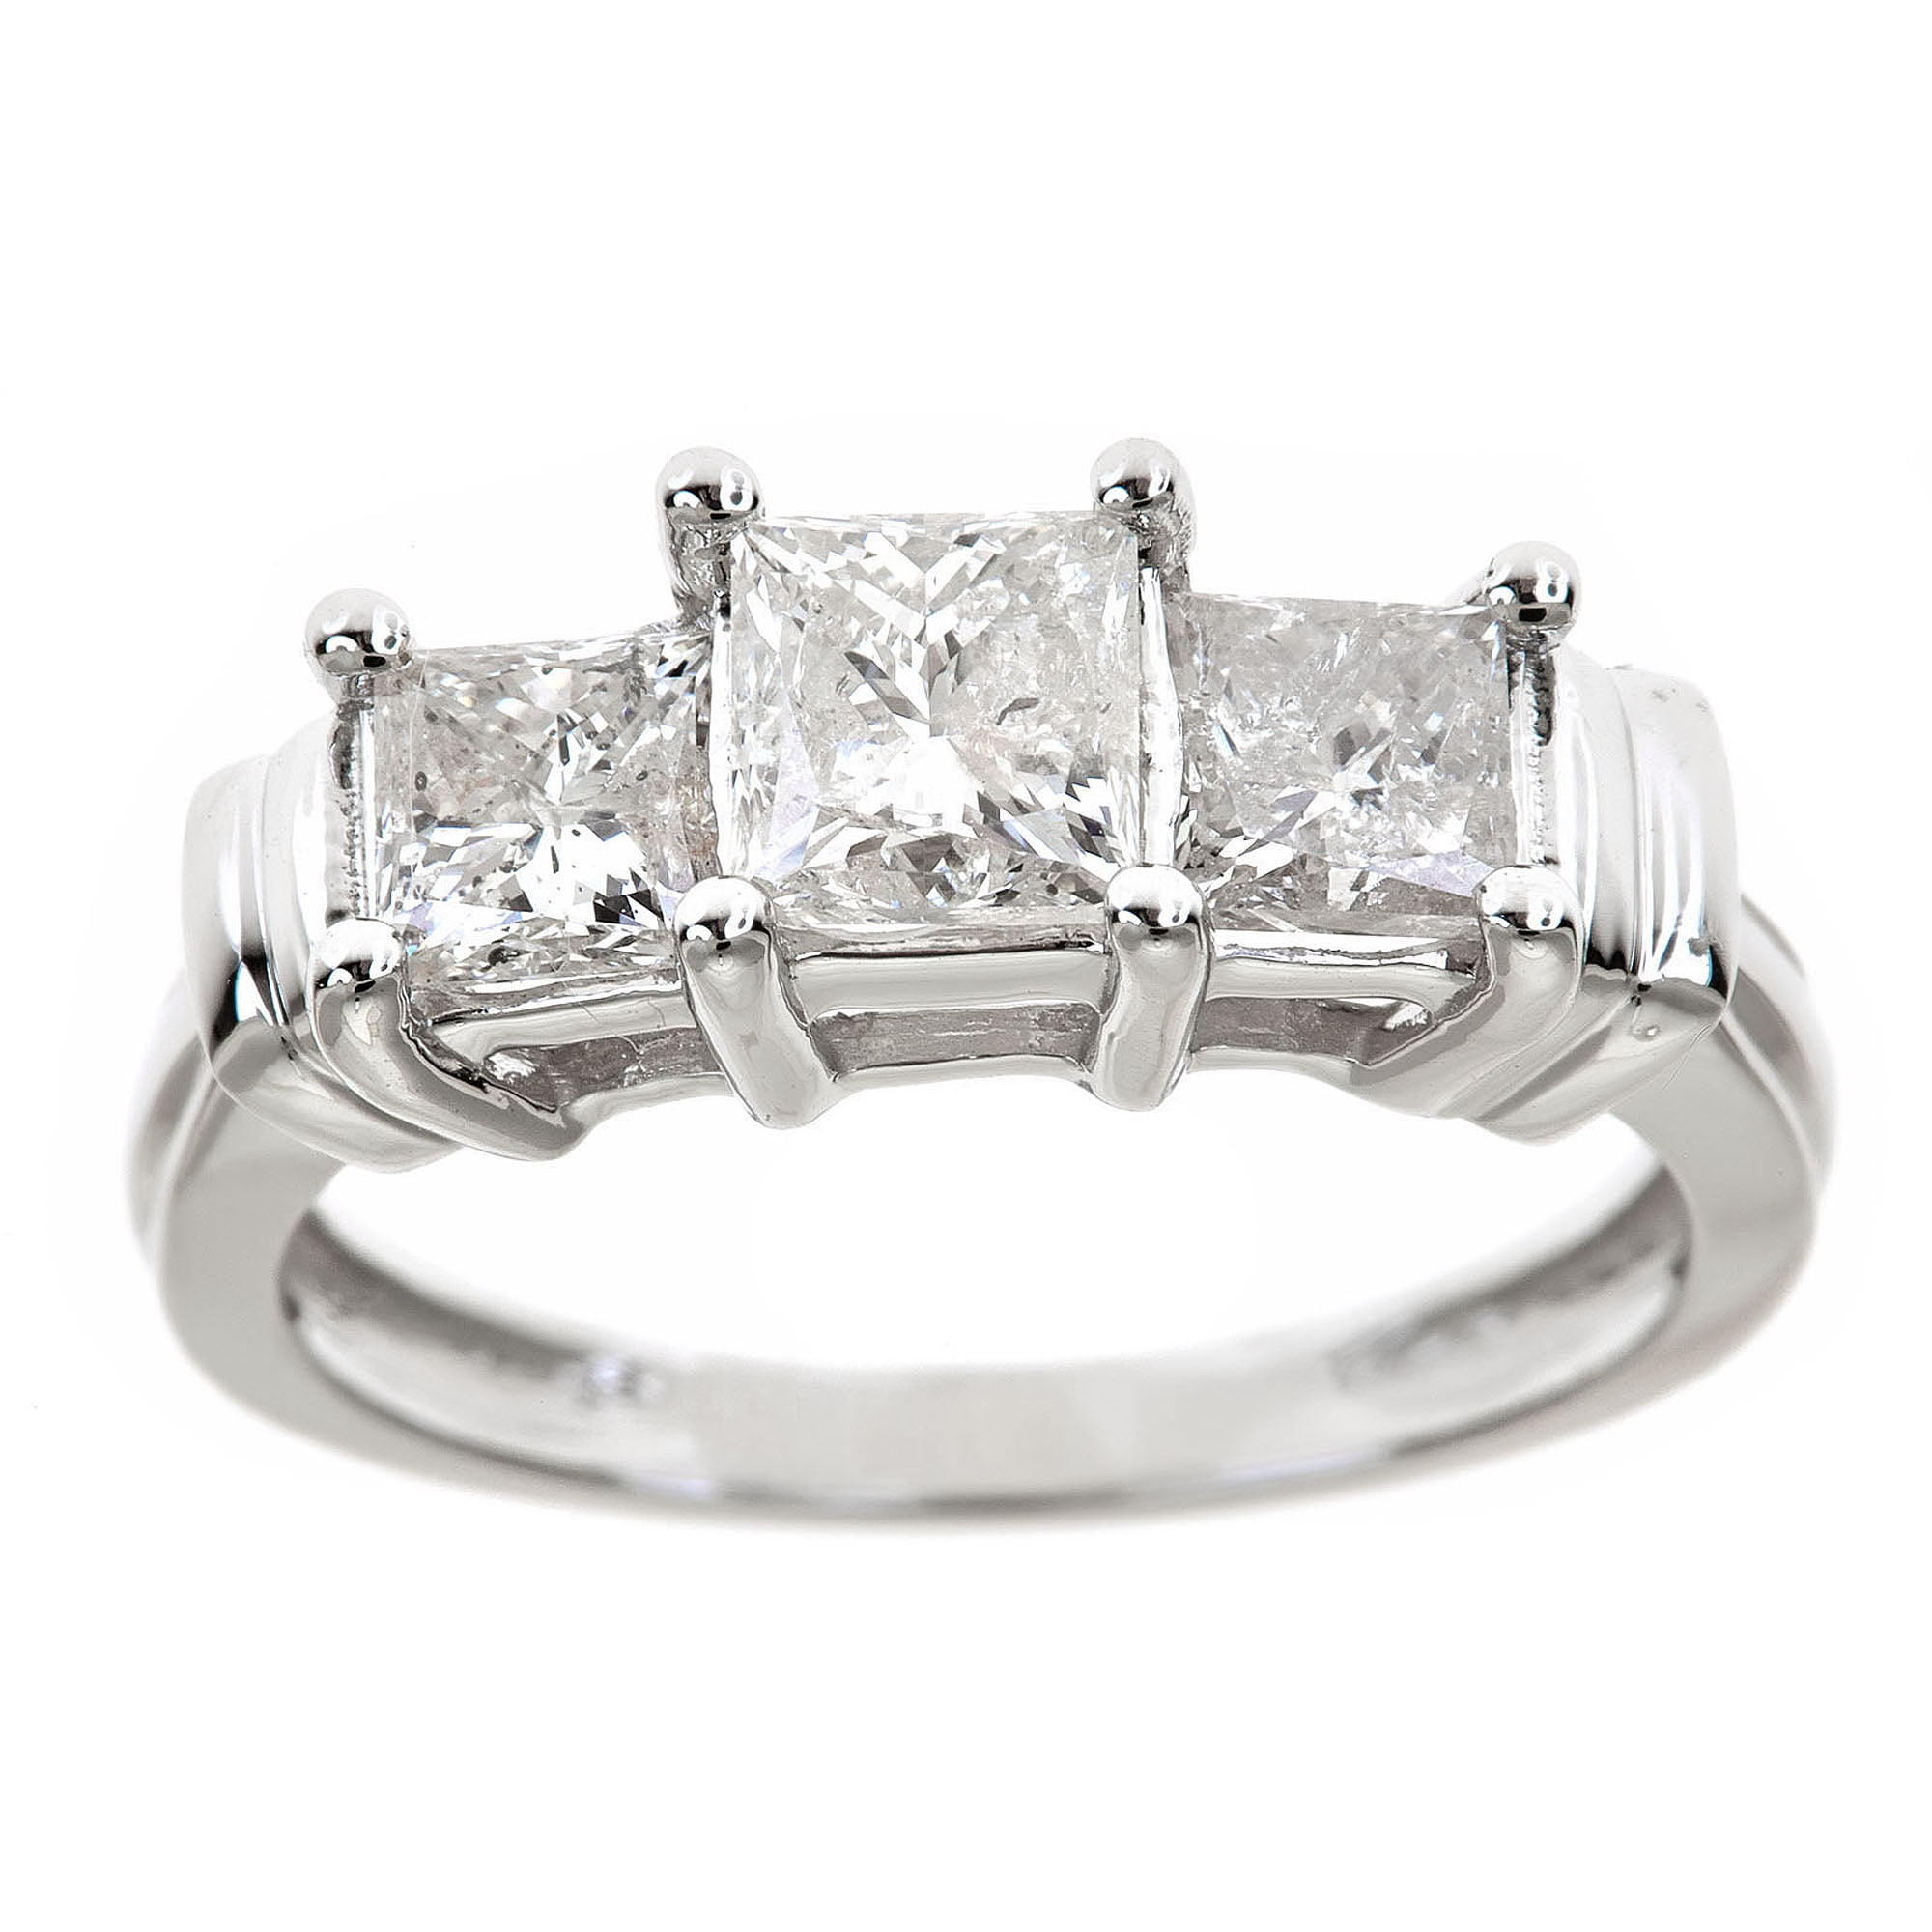 of rectangle luxury amp co ring for rings diamond engagement wedding beautiful tiffany at sale